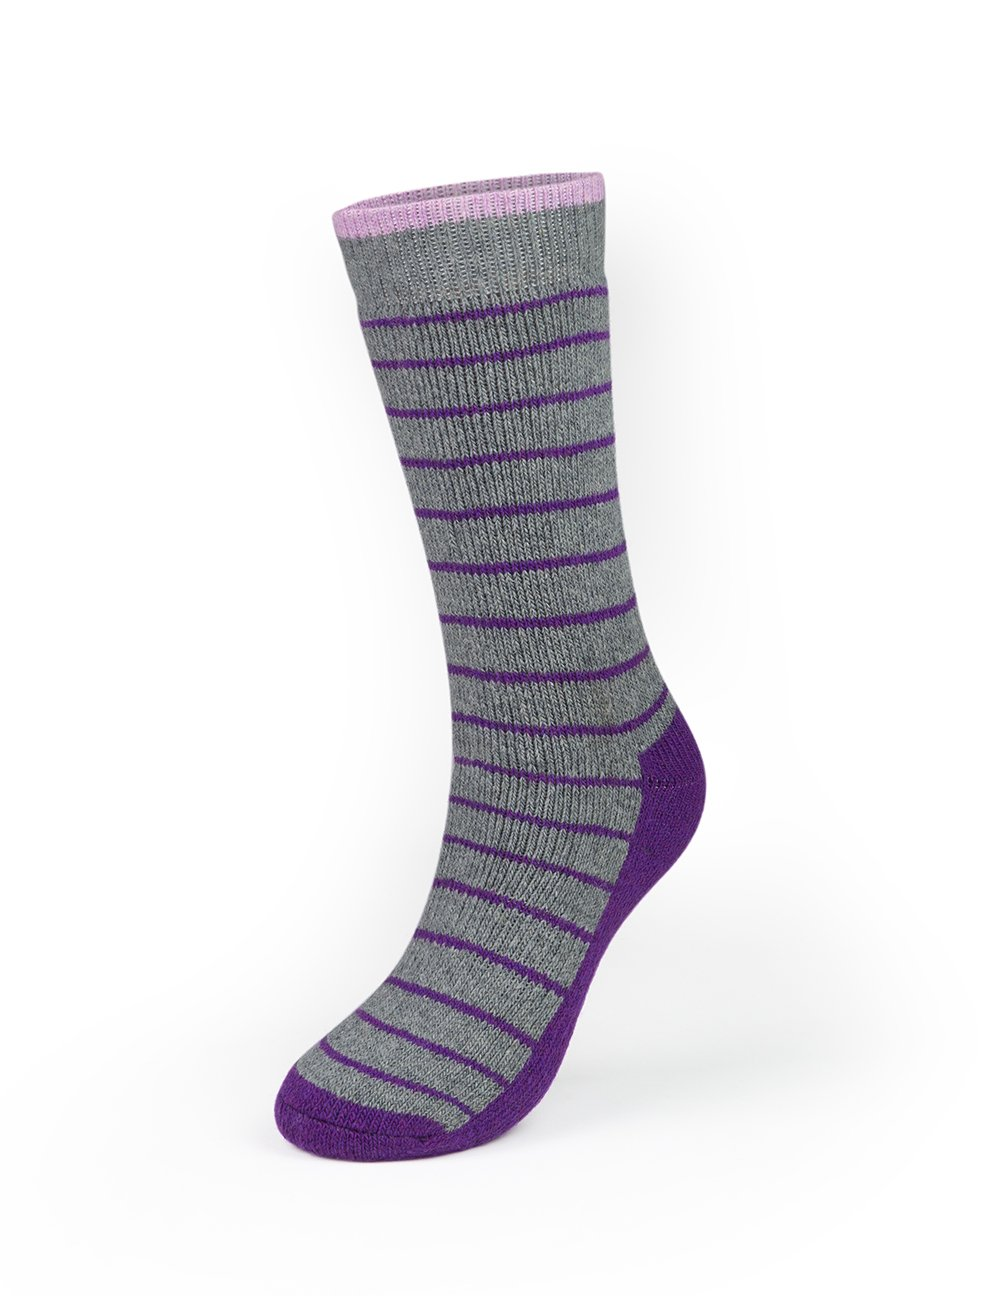 Kodiak - Women's Crew Socks - Style 4340 - Gray with Purple Accents